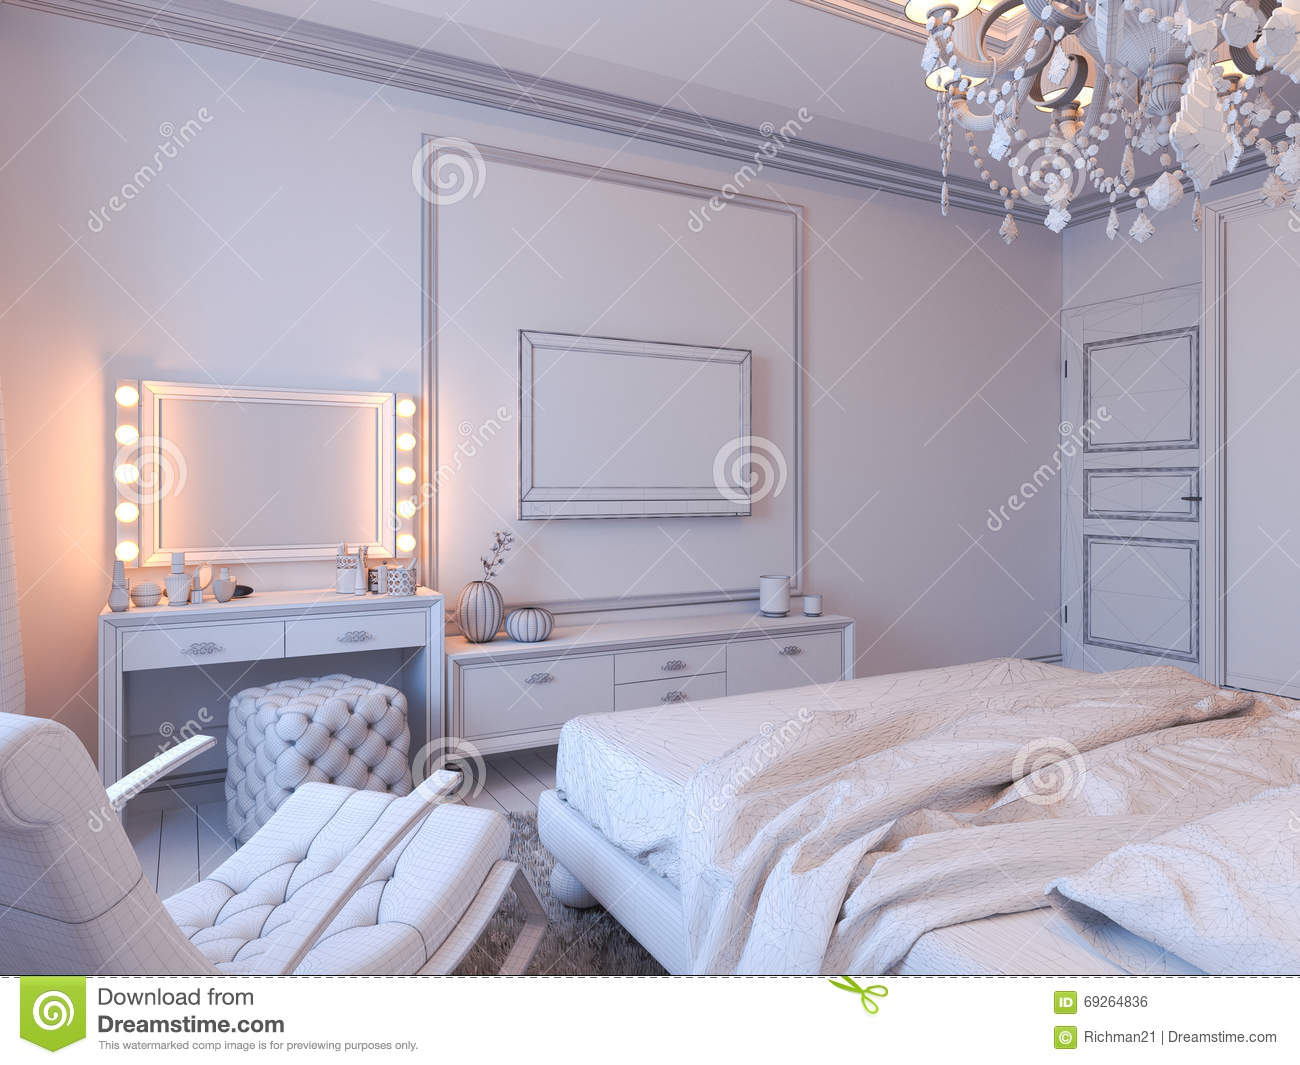 3d Render Of Bedroom Interior Design In A Modern Classic Style. Light,  Duvet.